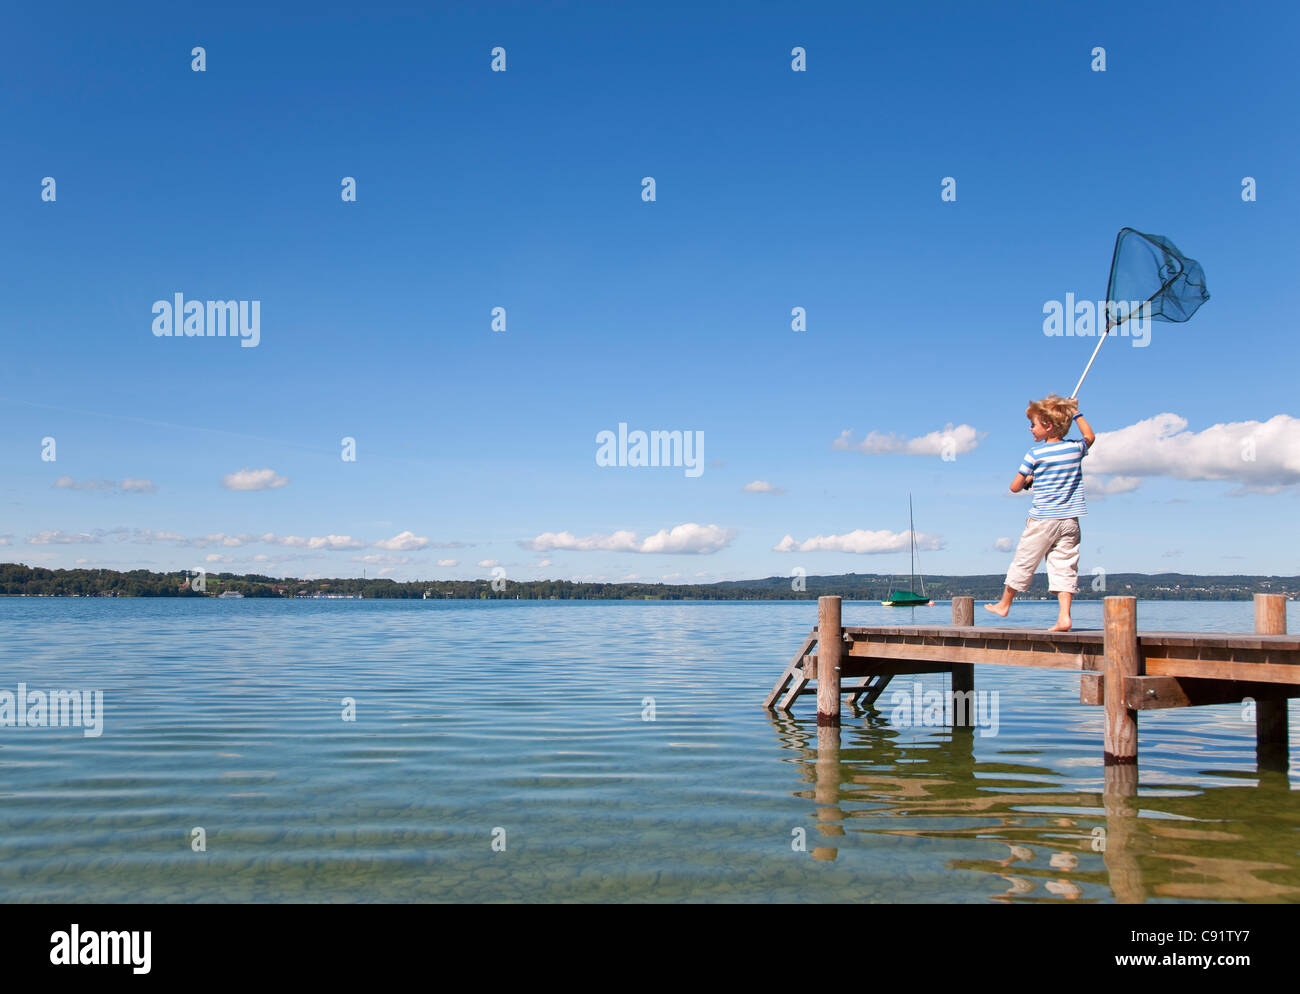 Boy fishing with net in lake - Stock Image